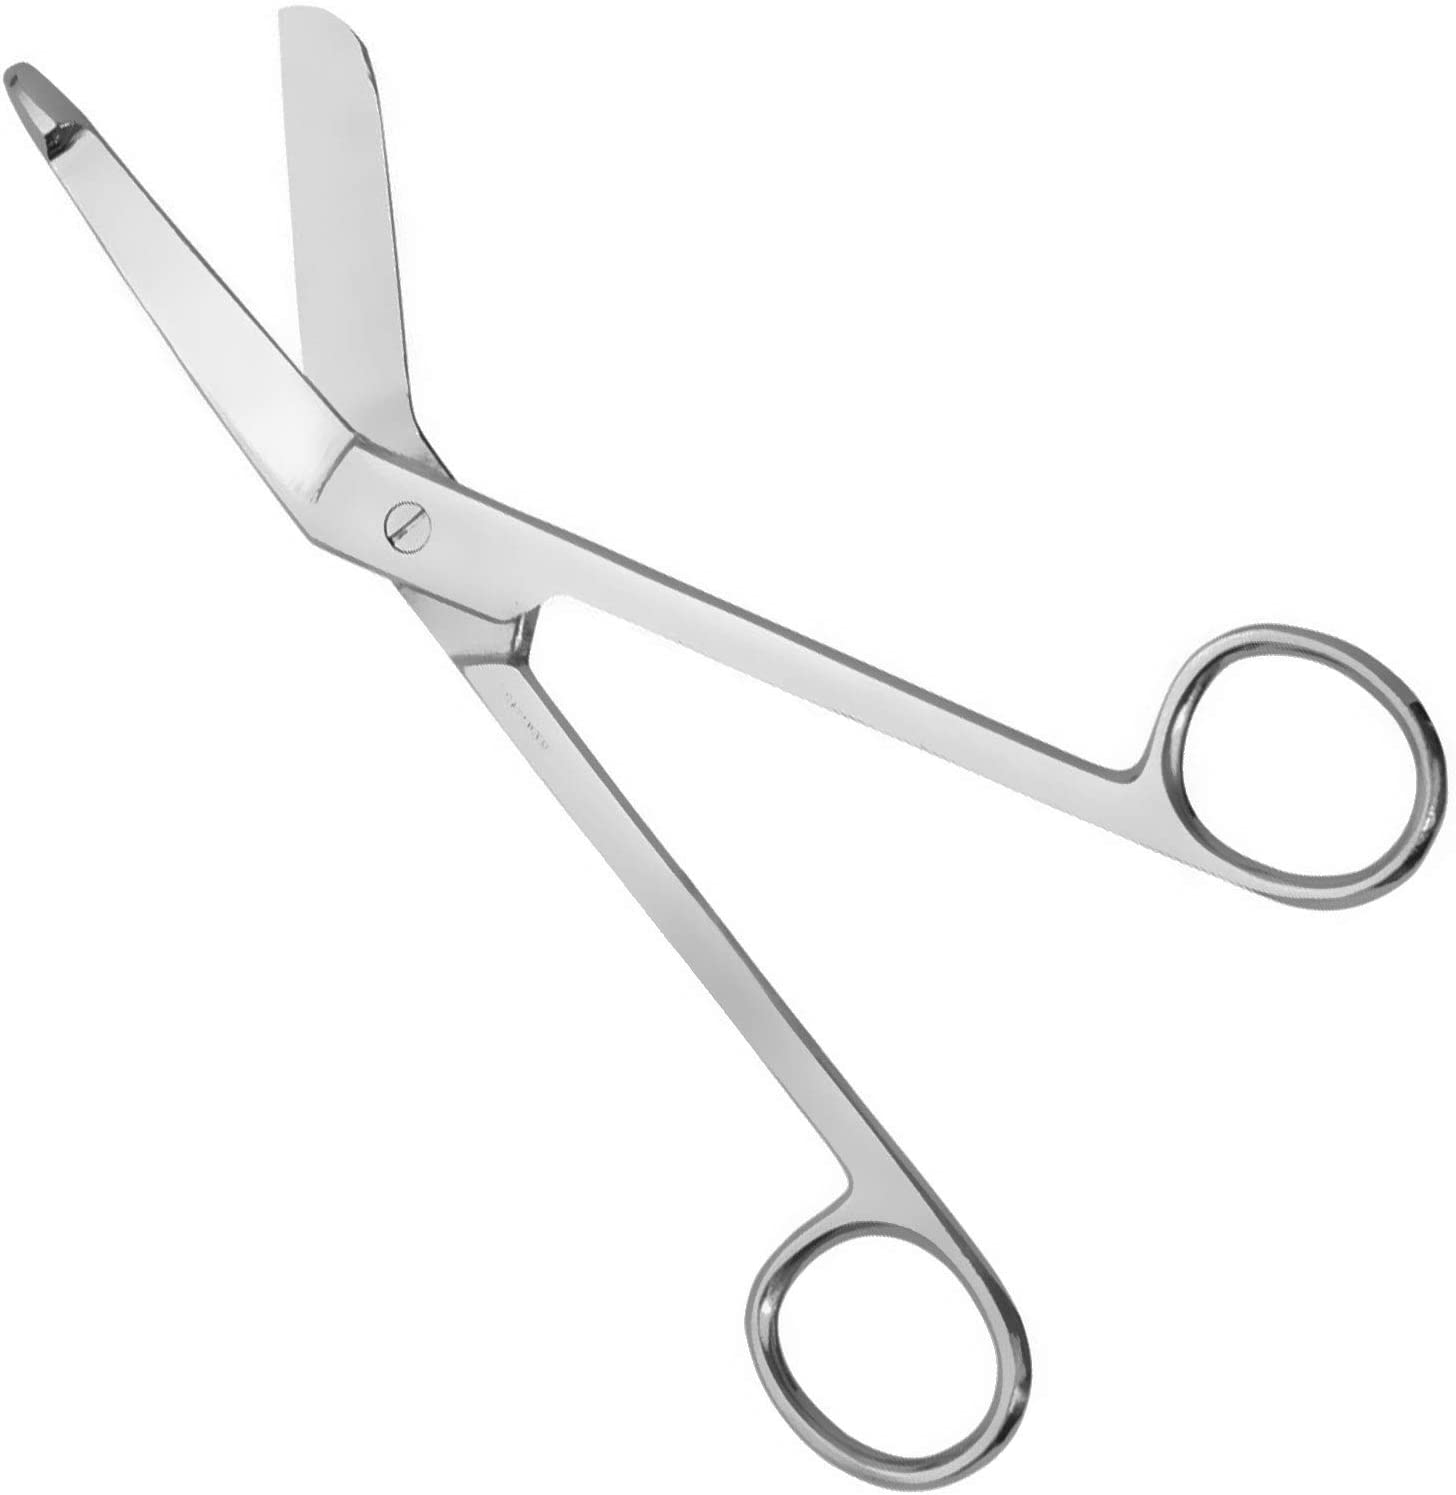 MABIS Now free shipping Precision Lister Oklahoma City Mall Bandage Stainless Steel Shears Scissors